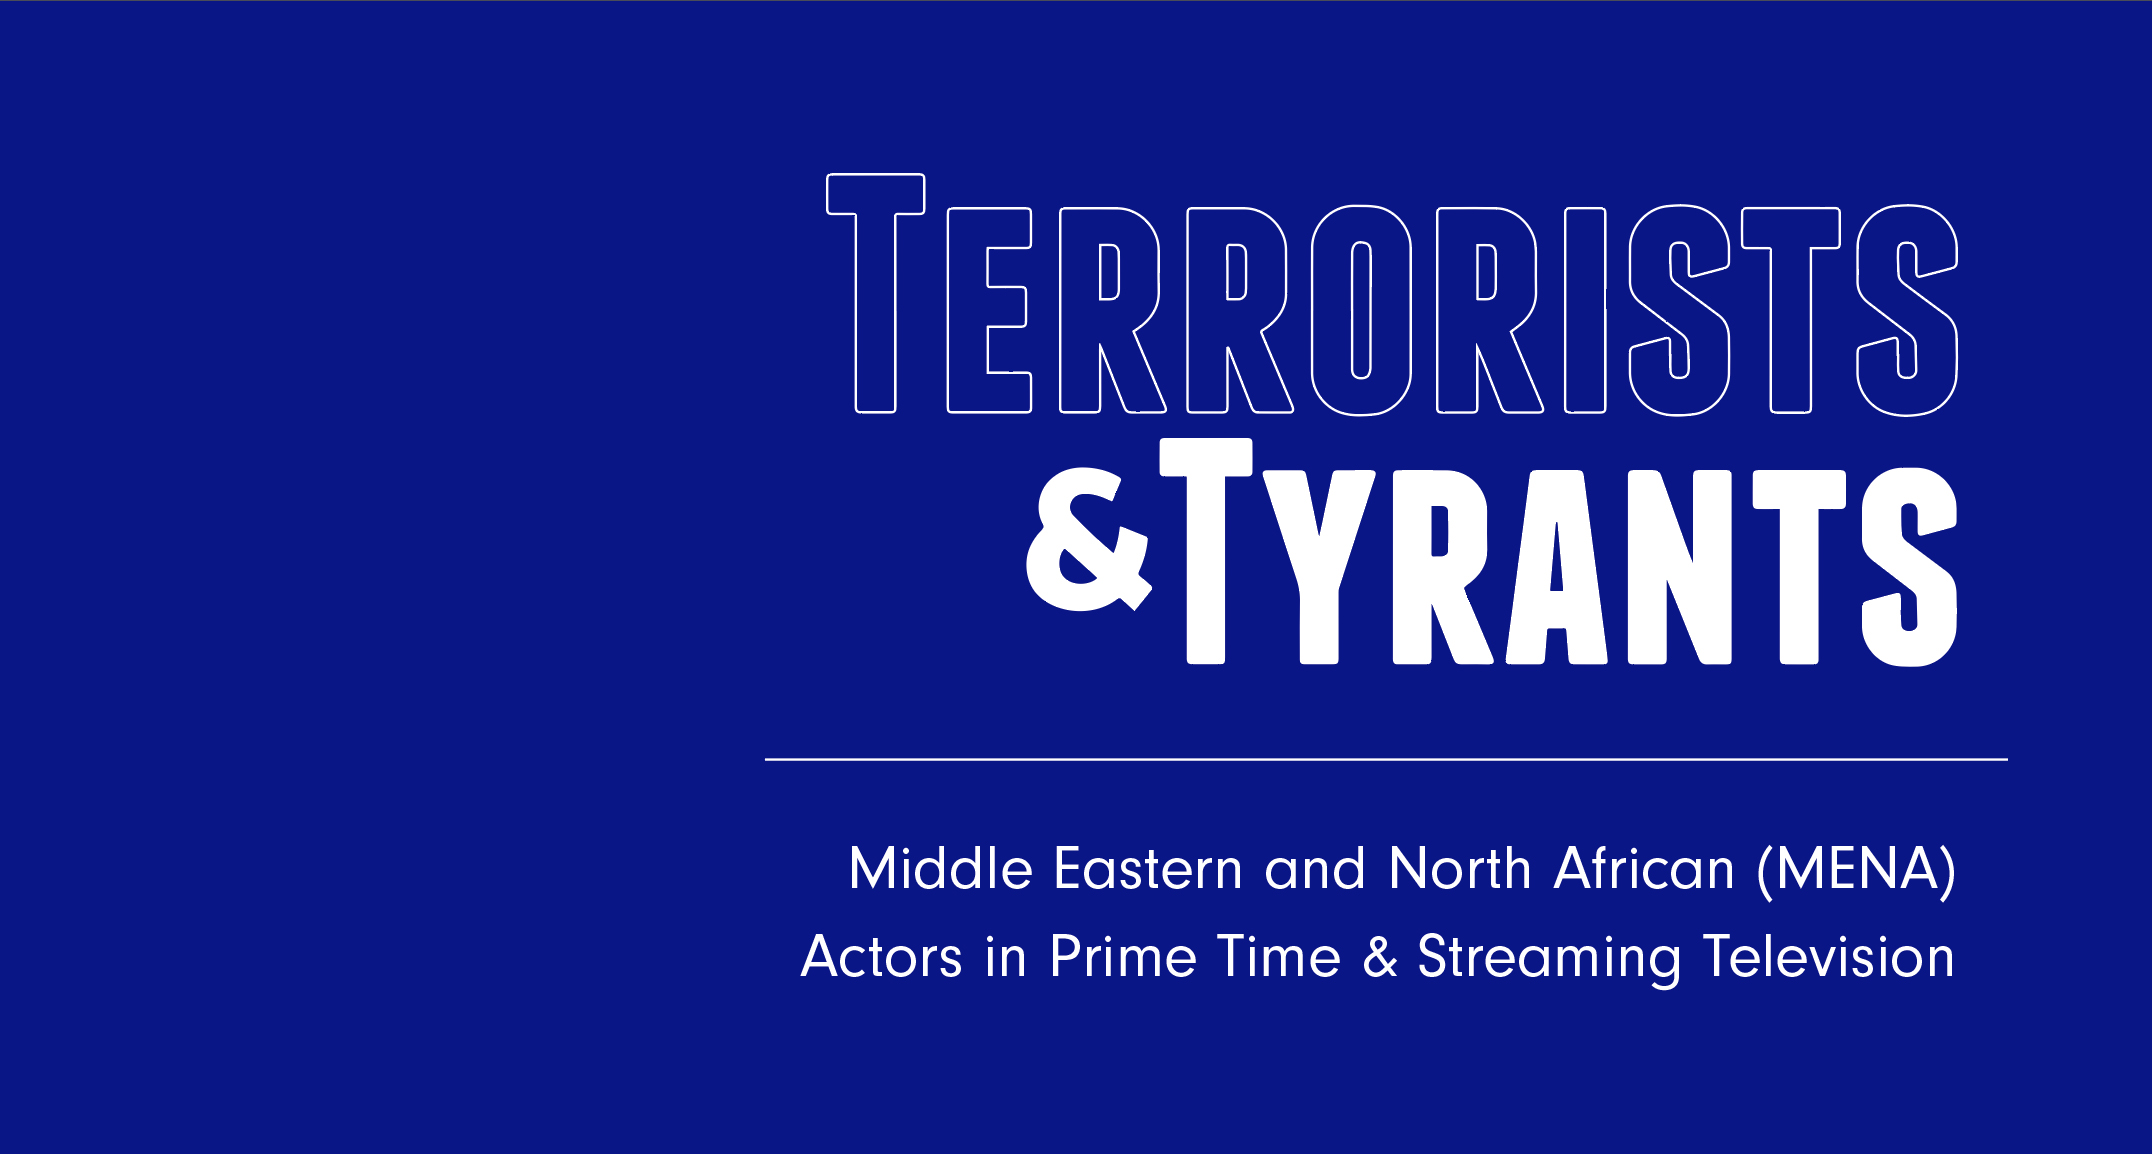 New Study Finds only 1% of TV Series Regular Performers are Middle Eastern North African. 78% of that time MENAs are seen as threats. - .